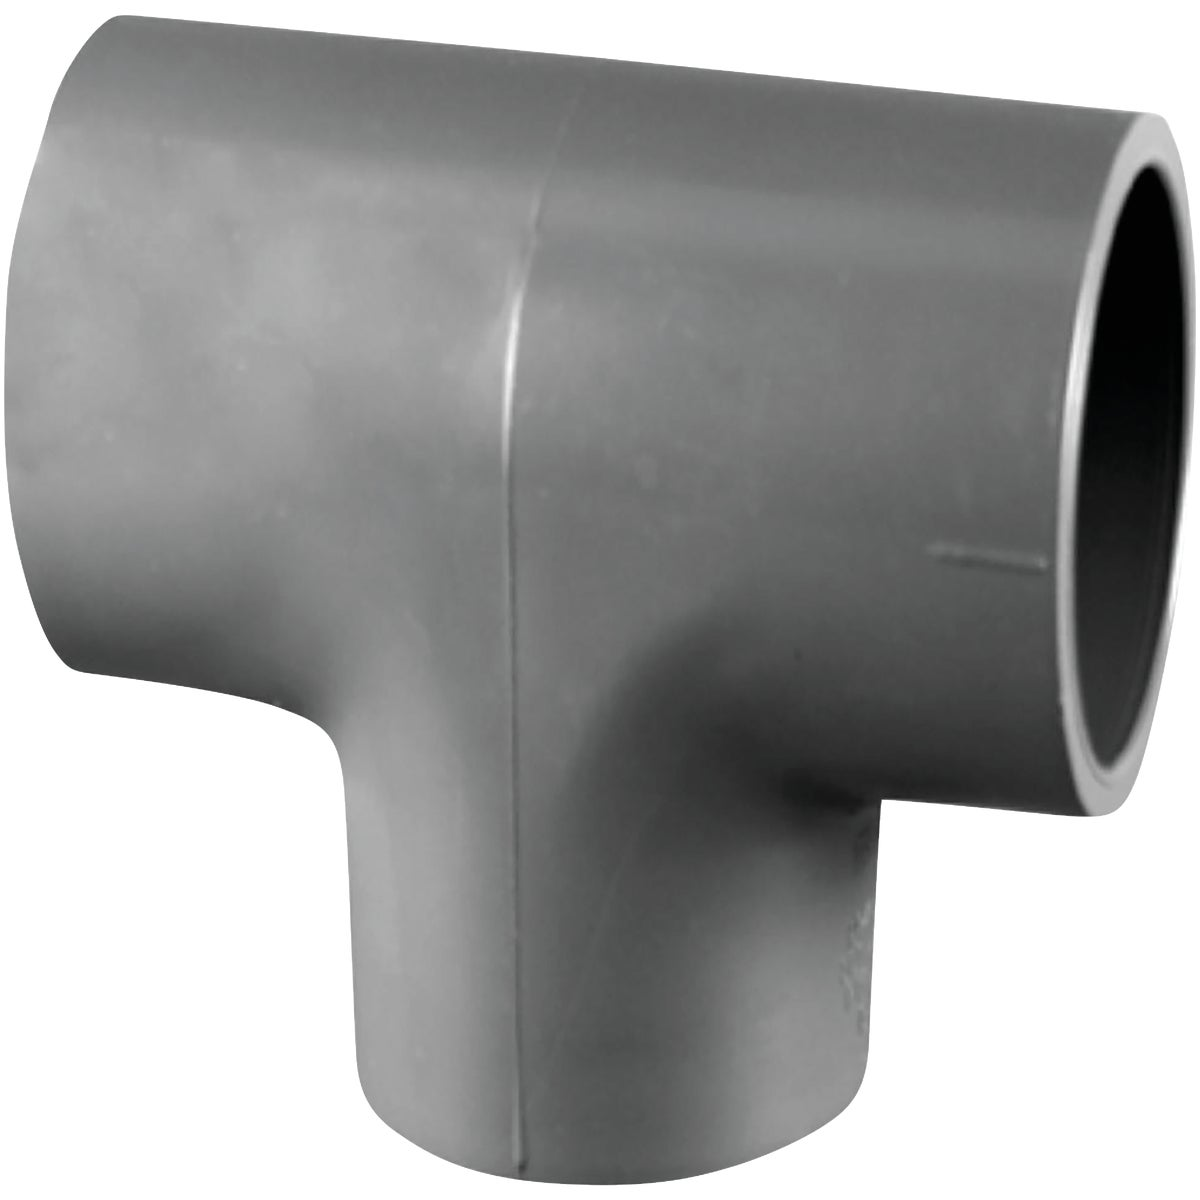 "2"" SCH80 PVC TEE - 314208 by Genova Inc"